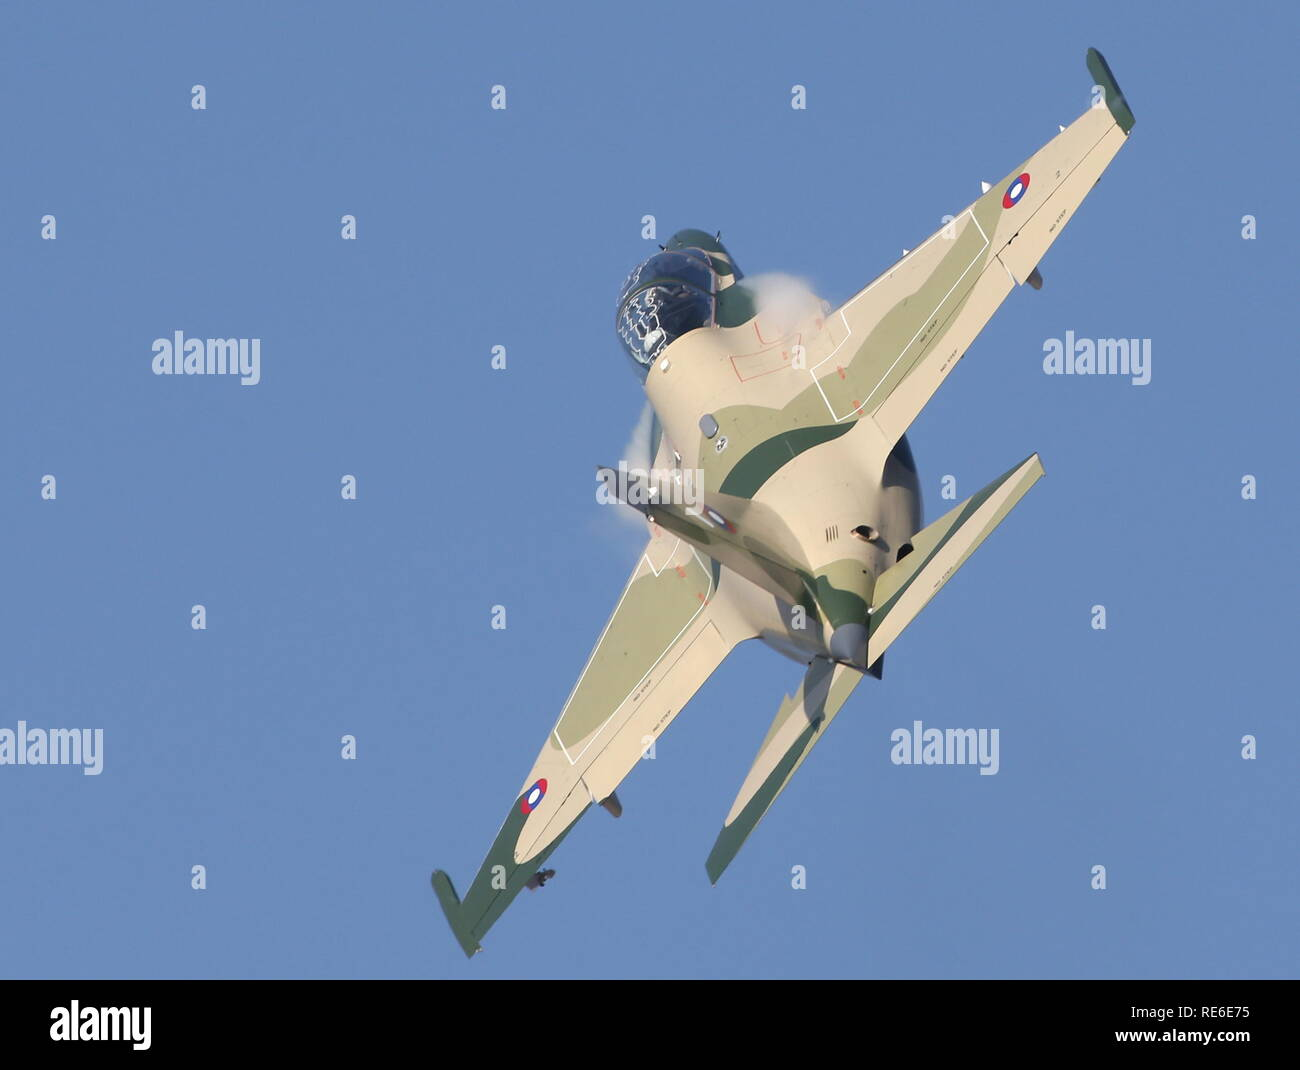 Numera två par tumvantar - Yak-130 Mitten - Zvezda 1/48 - Sida 7 Vientiane-laos-20th-jan-2019-vientiane-laos-january-20-2019-a-yakovlev-yak-130-jet-trainer-aircraft-during-a-military-parade-marking-70-years-since-the-founding-of-the-lao-peoples-armed-forces-marina-lystsevatass-credit-itar-tass-news-agencyalamy-live-news-RE6E75